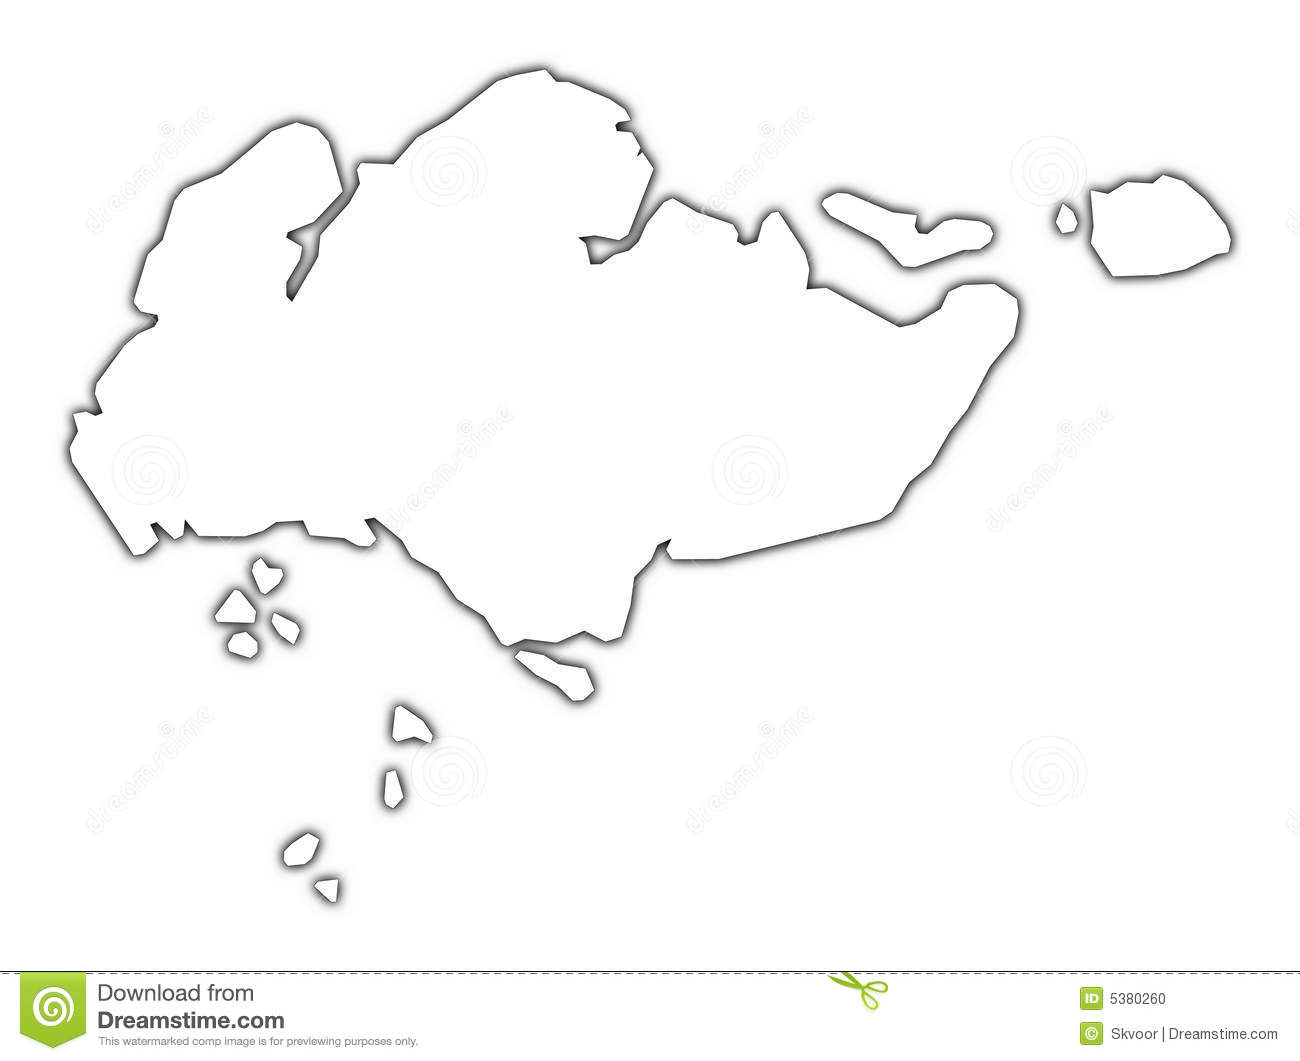 Singapore outline map stock illustration. Illustration of atlas ...